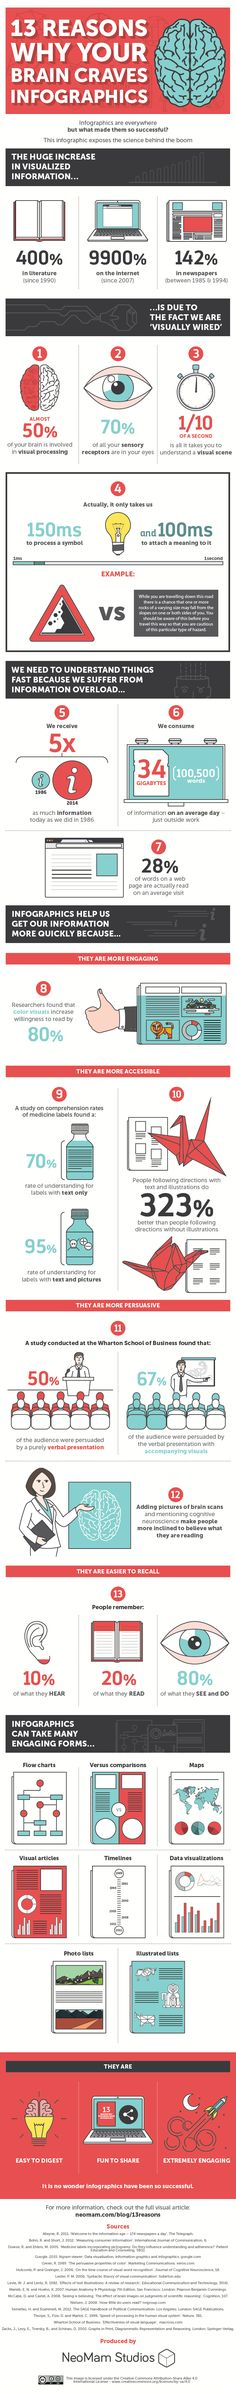 13 Reasons Why We Love #Infographics